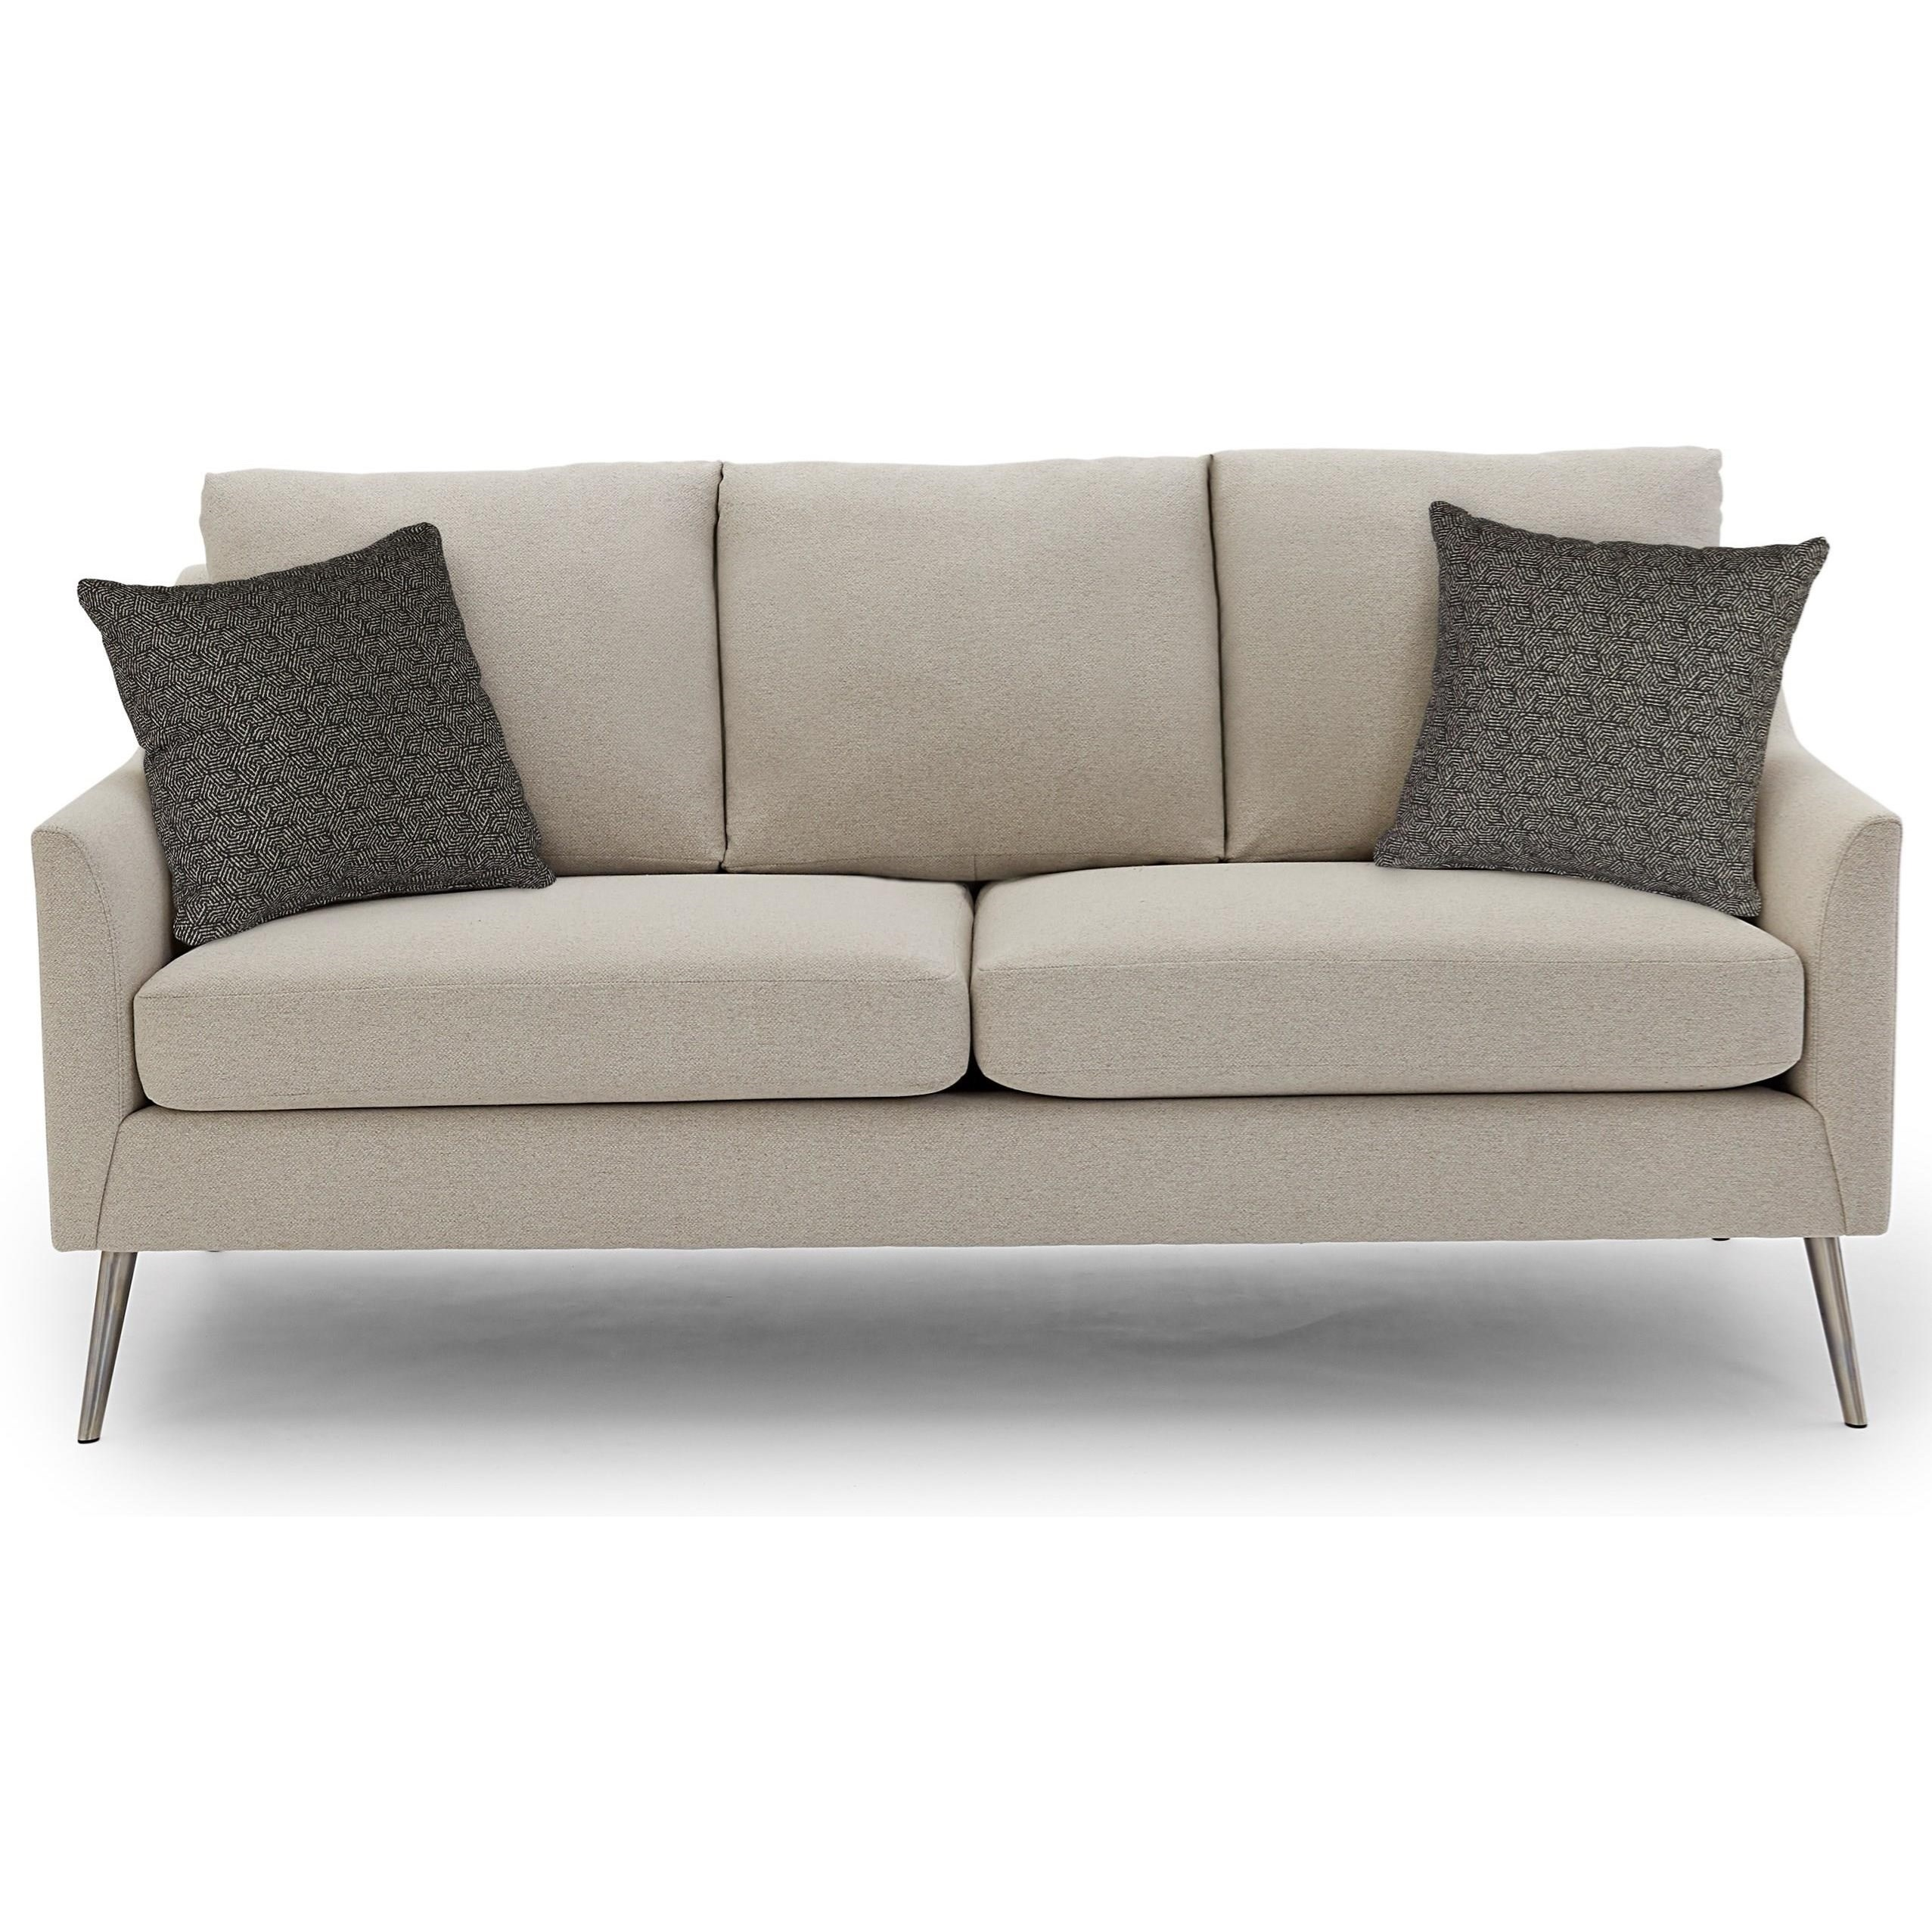 Smitten Stationary Sofa by Best Home Furnishings at EFO Furniture Outlet